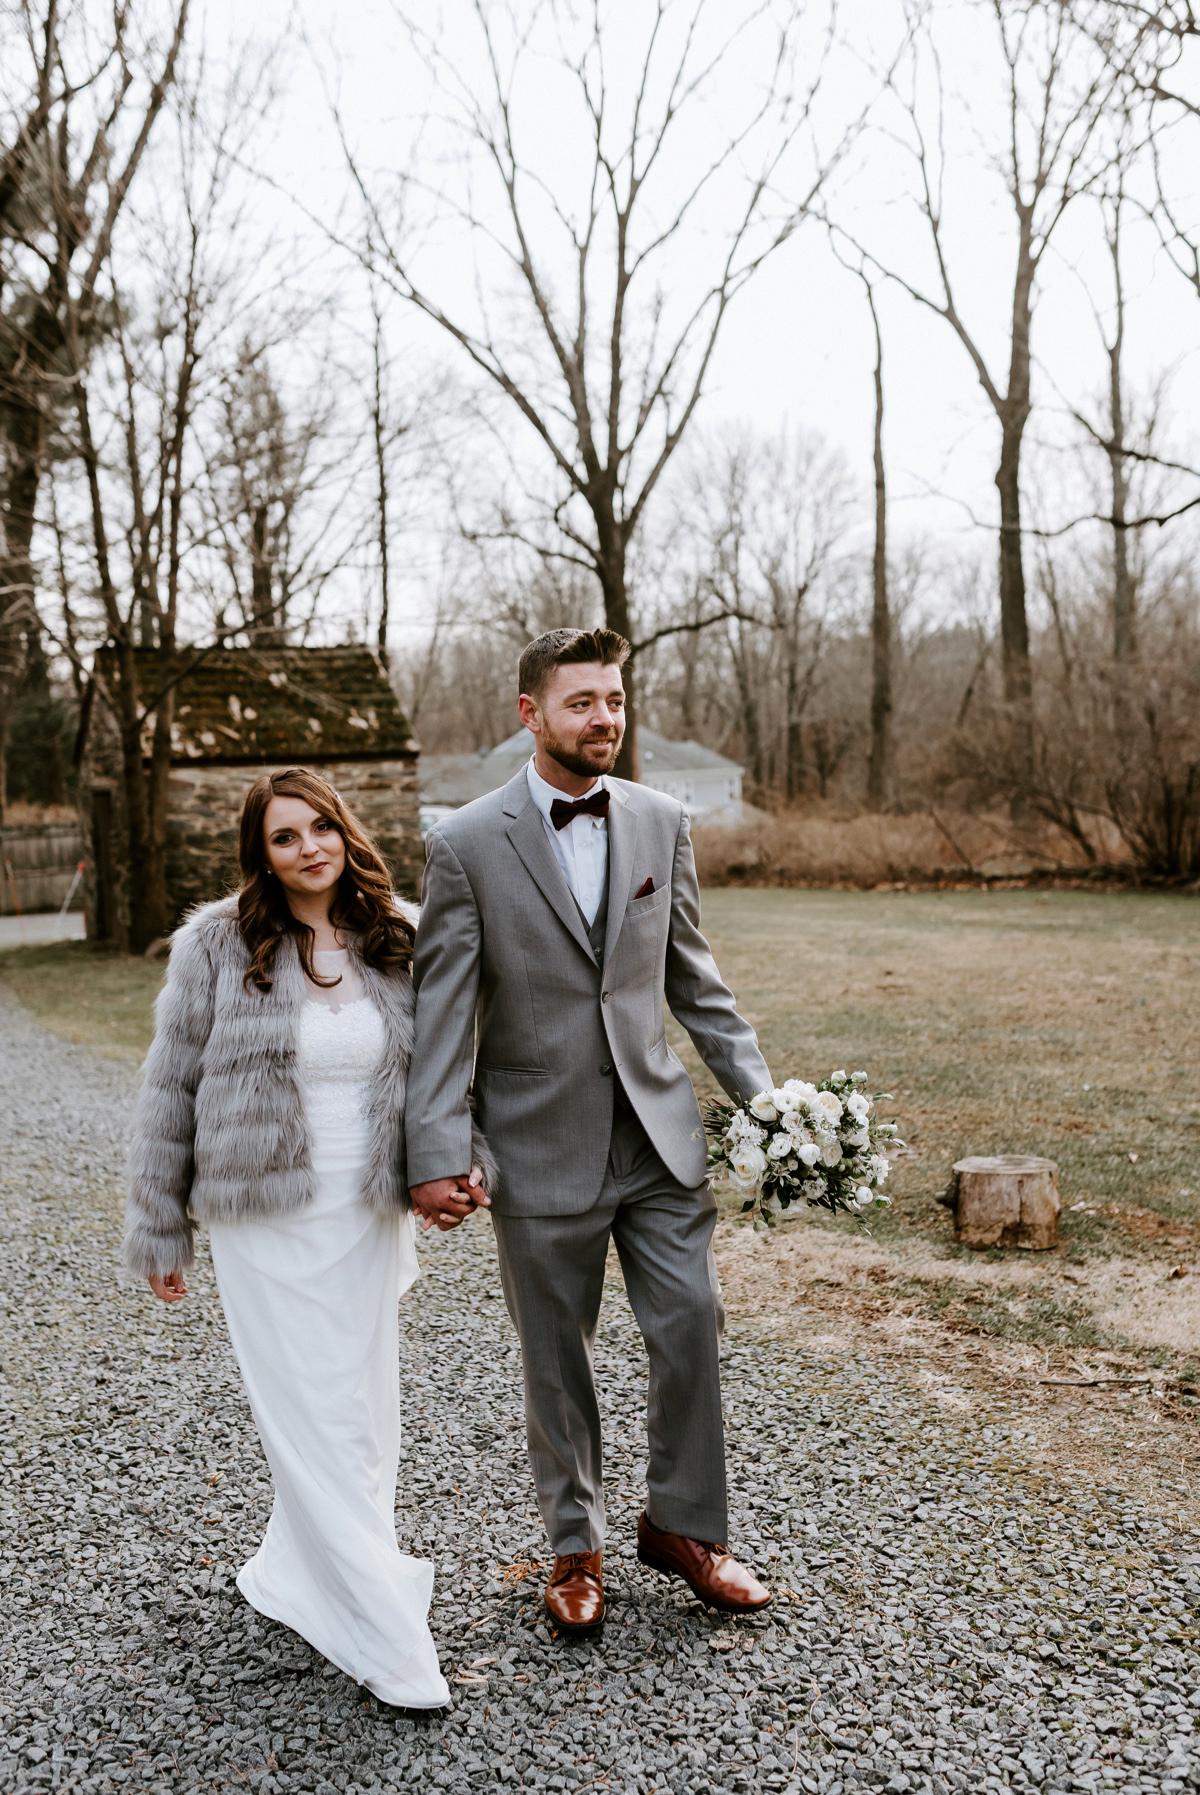 38 Winter Elopement Adventurous Elopement Photographer New Jersey Wedding Photographer Intimate Wedding